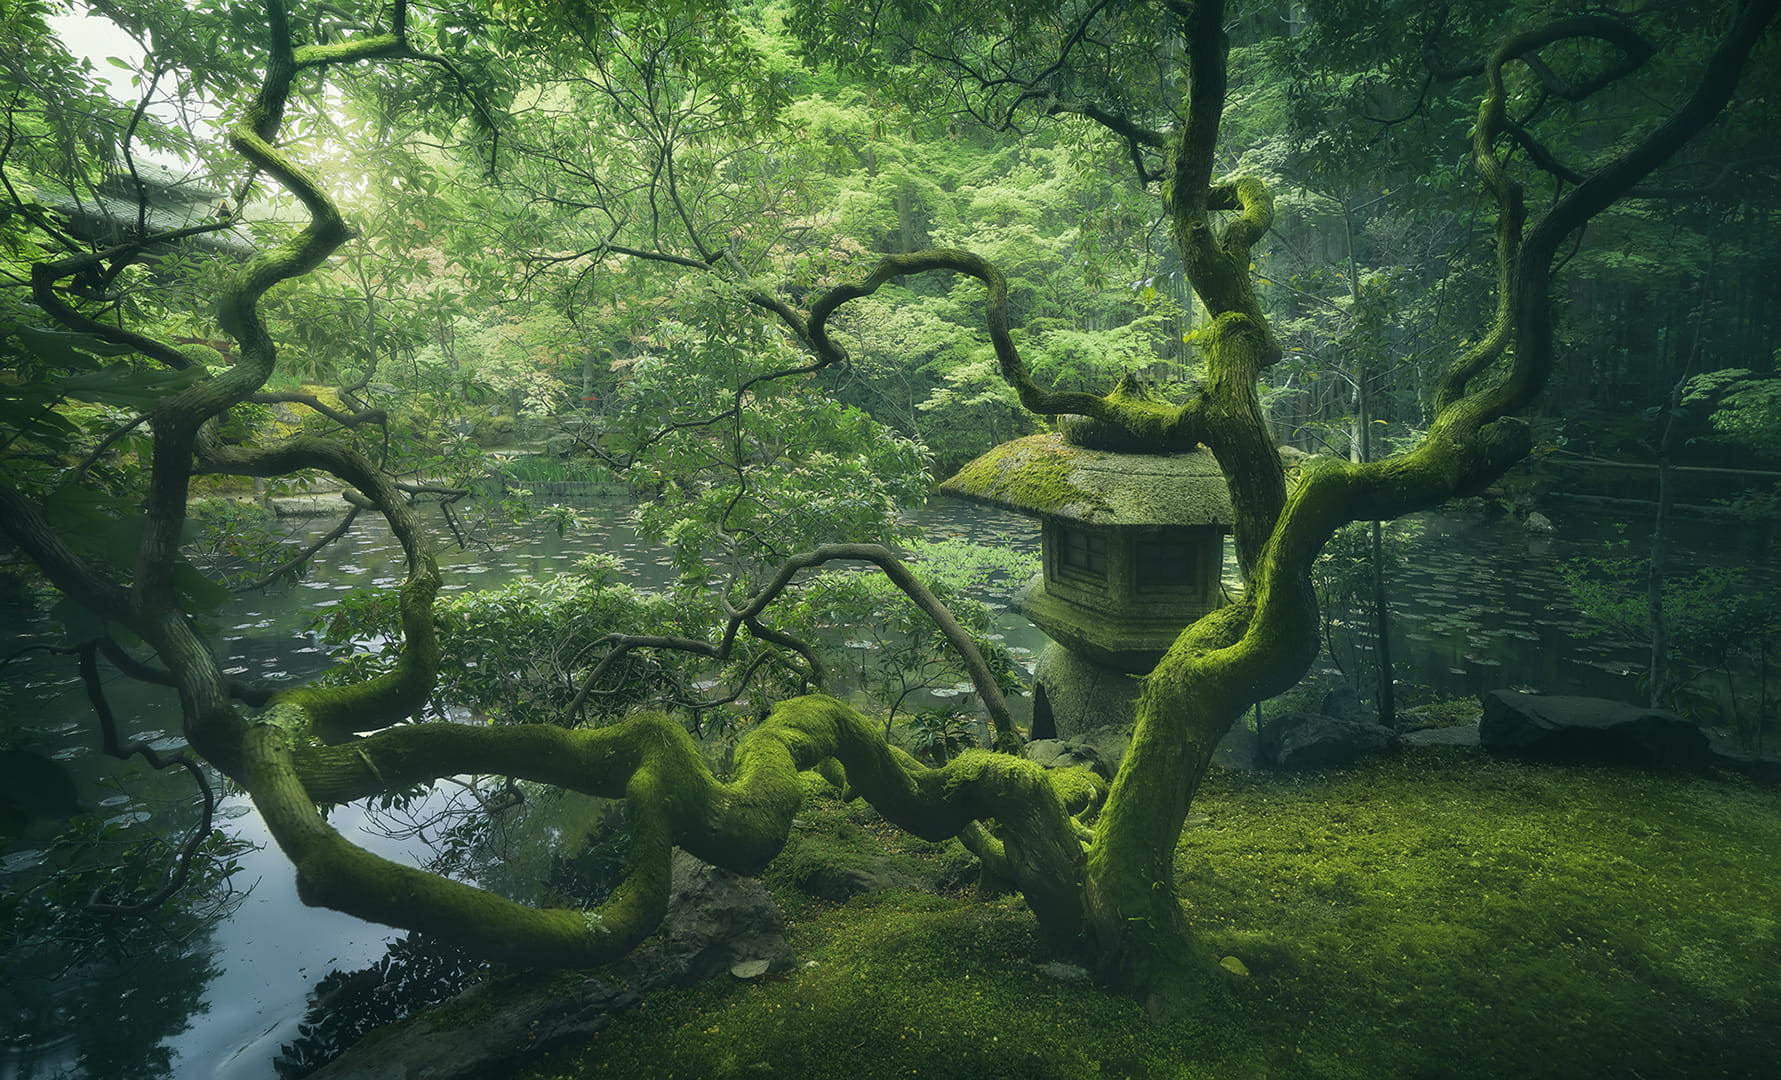 The Japanese Tree